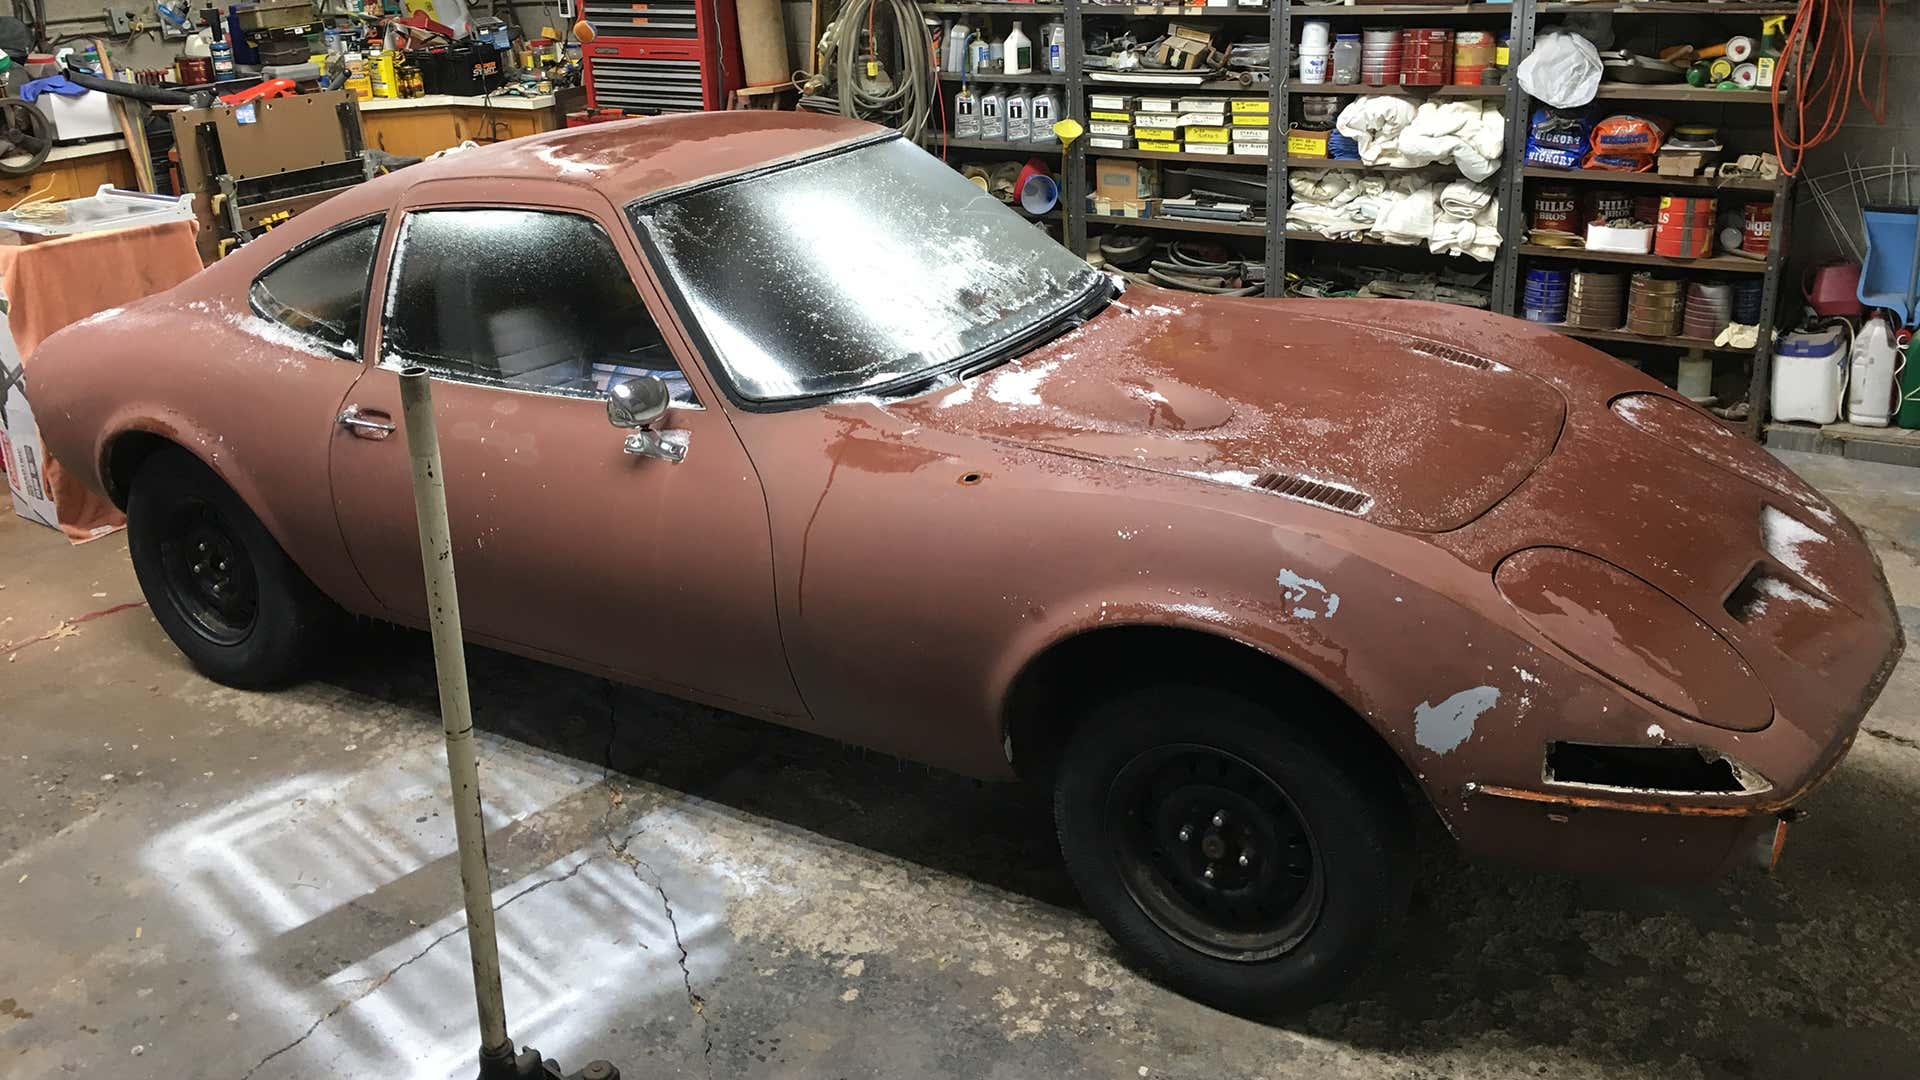 An Opel GT project in a garage.